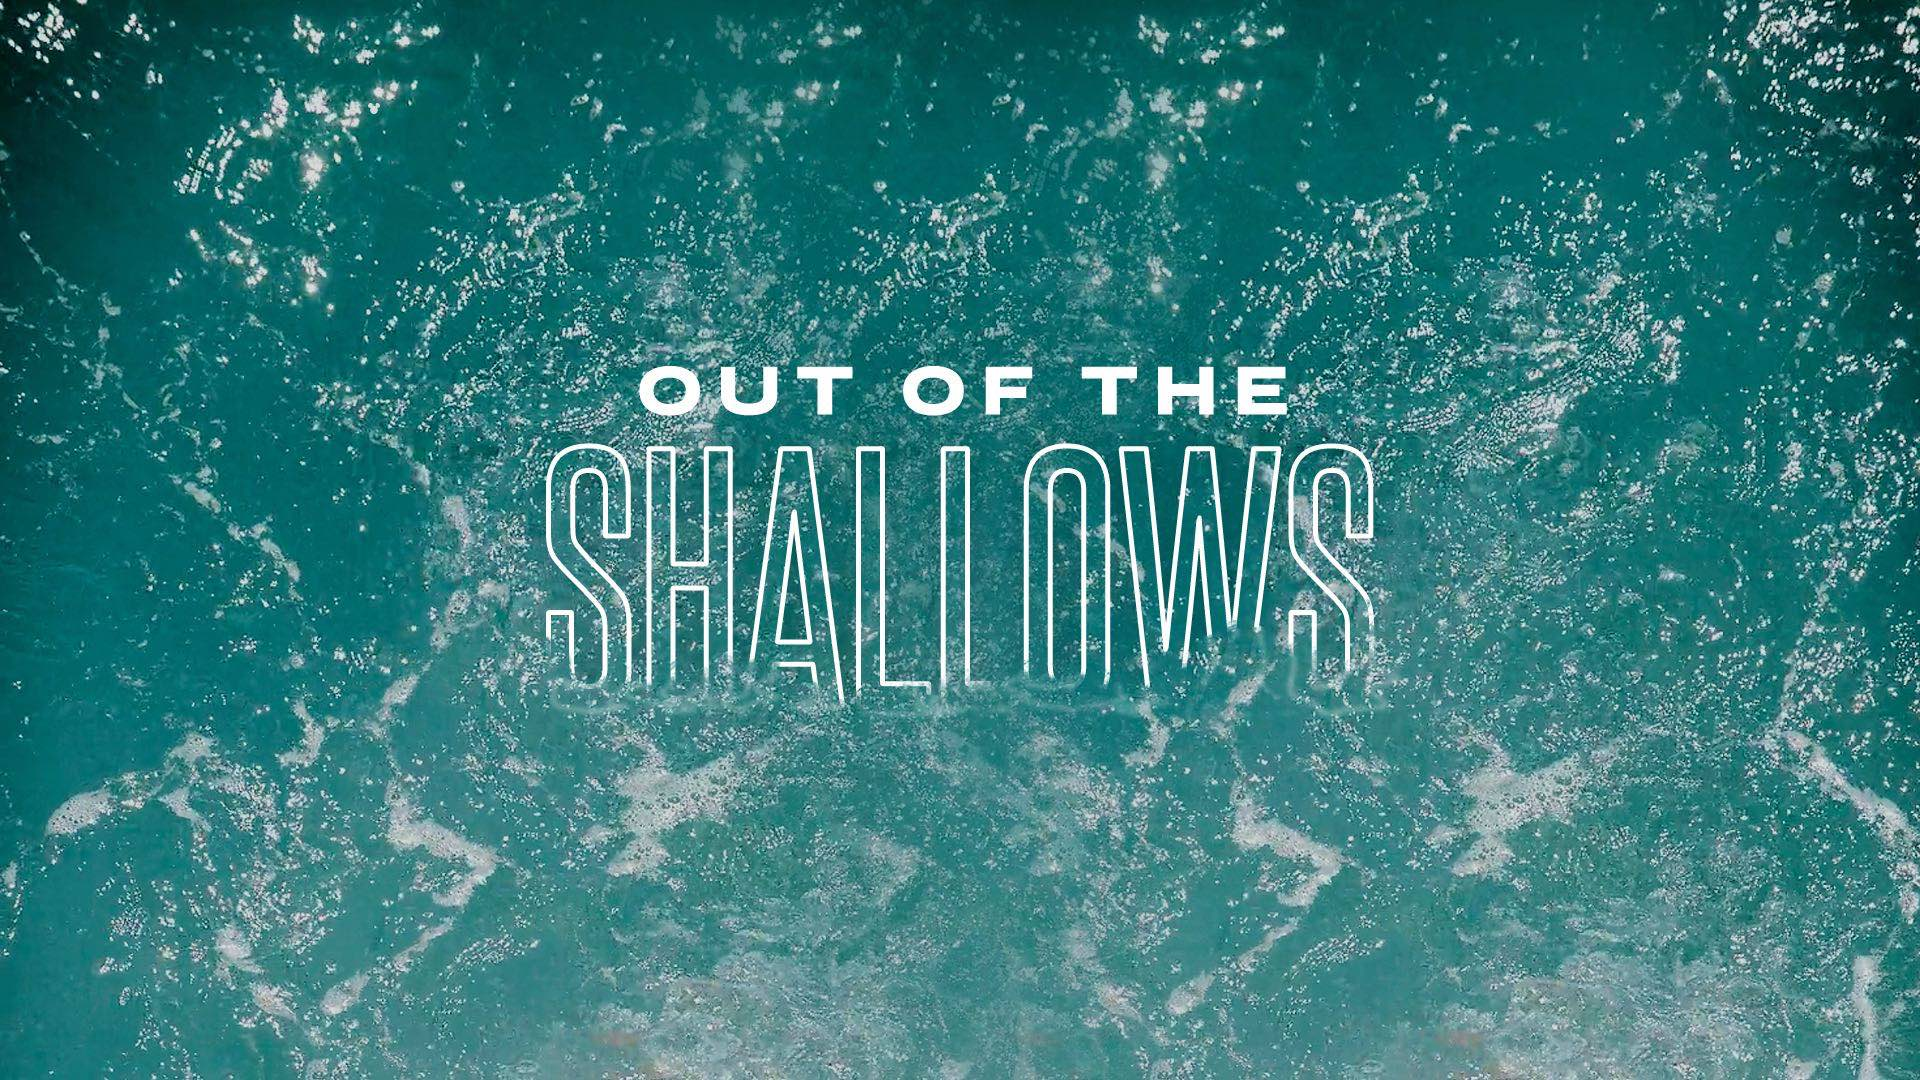 Out of the Shallows